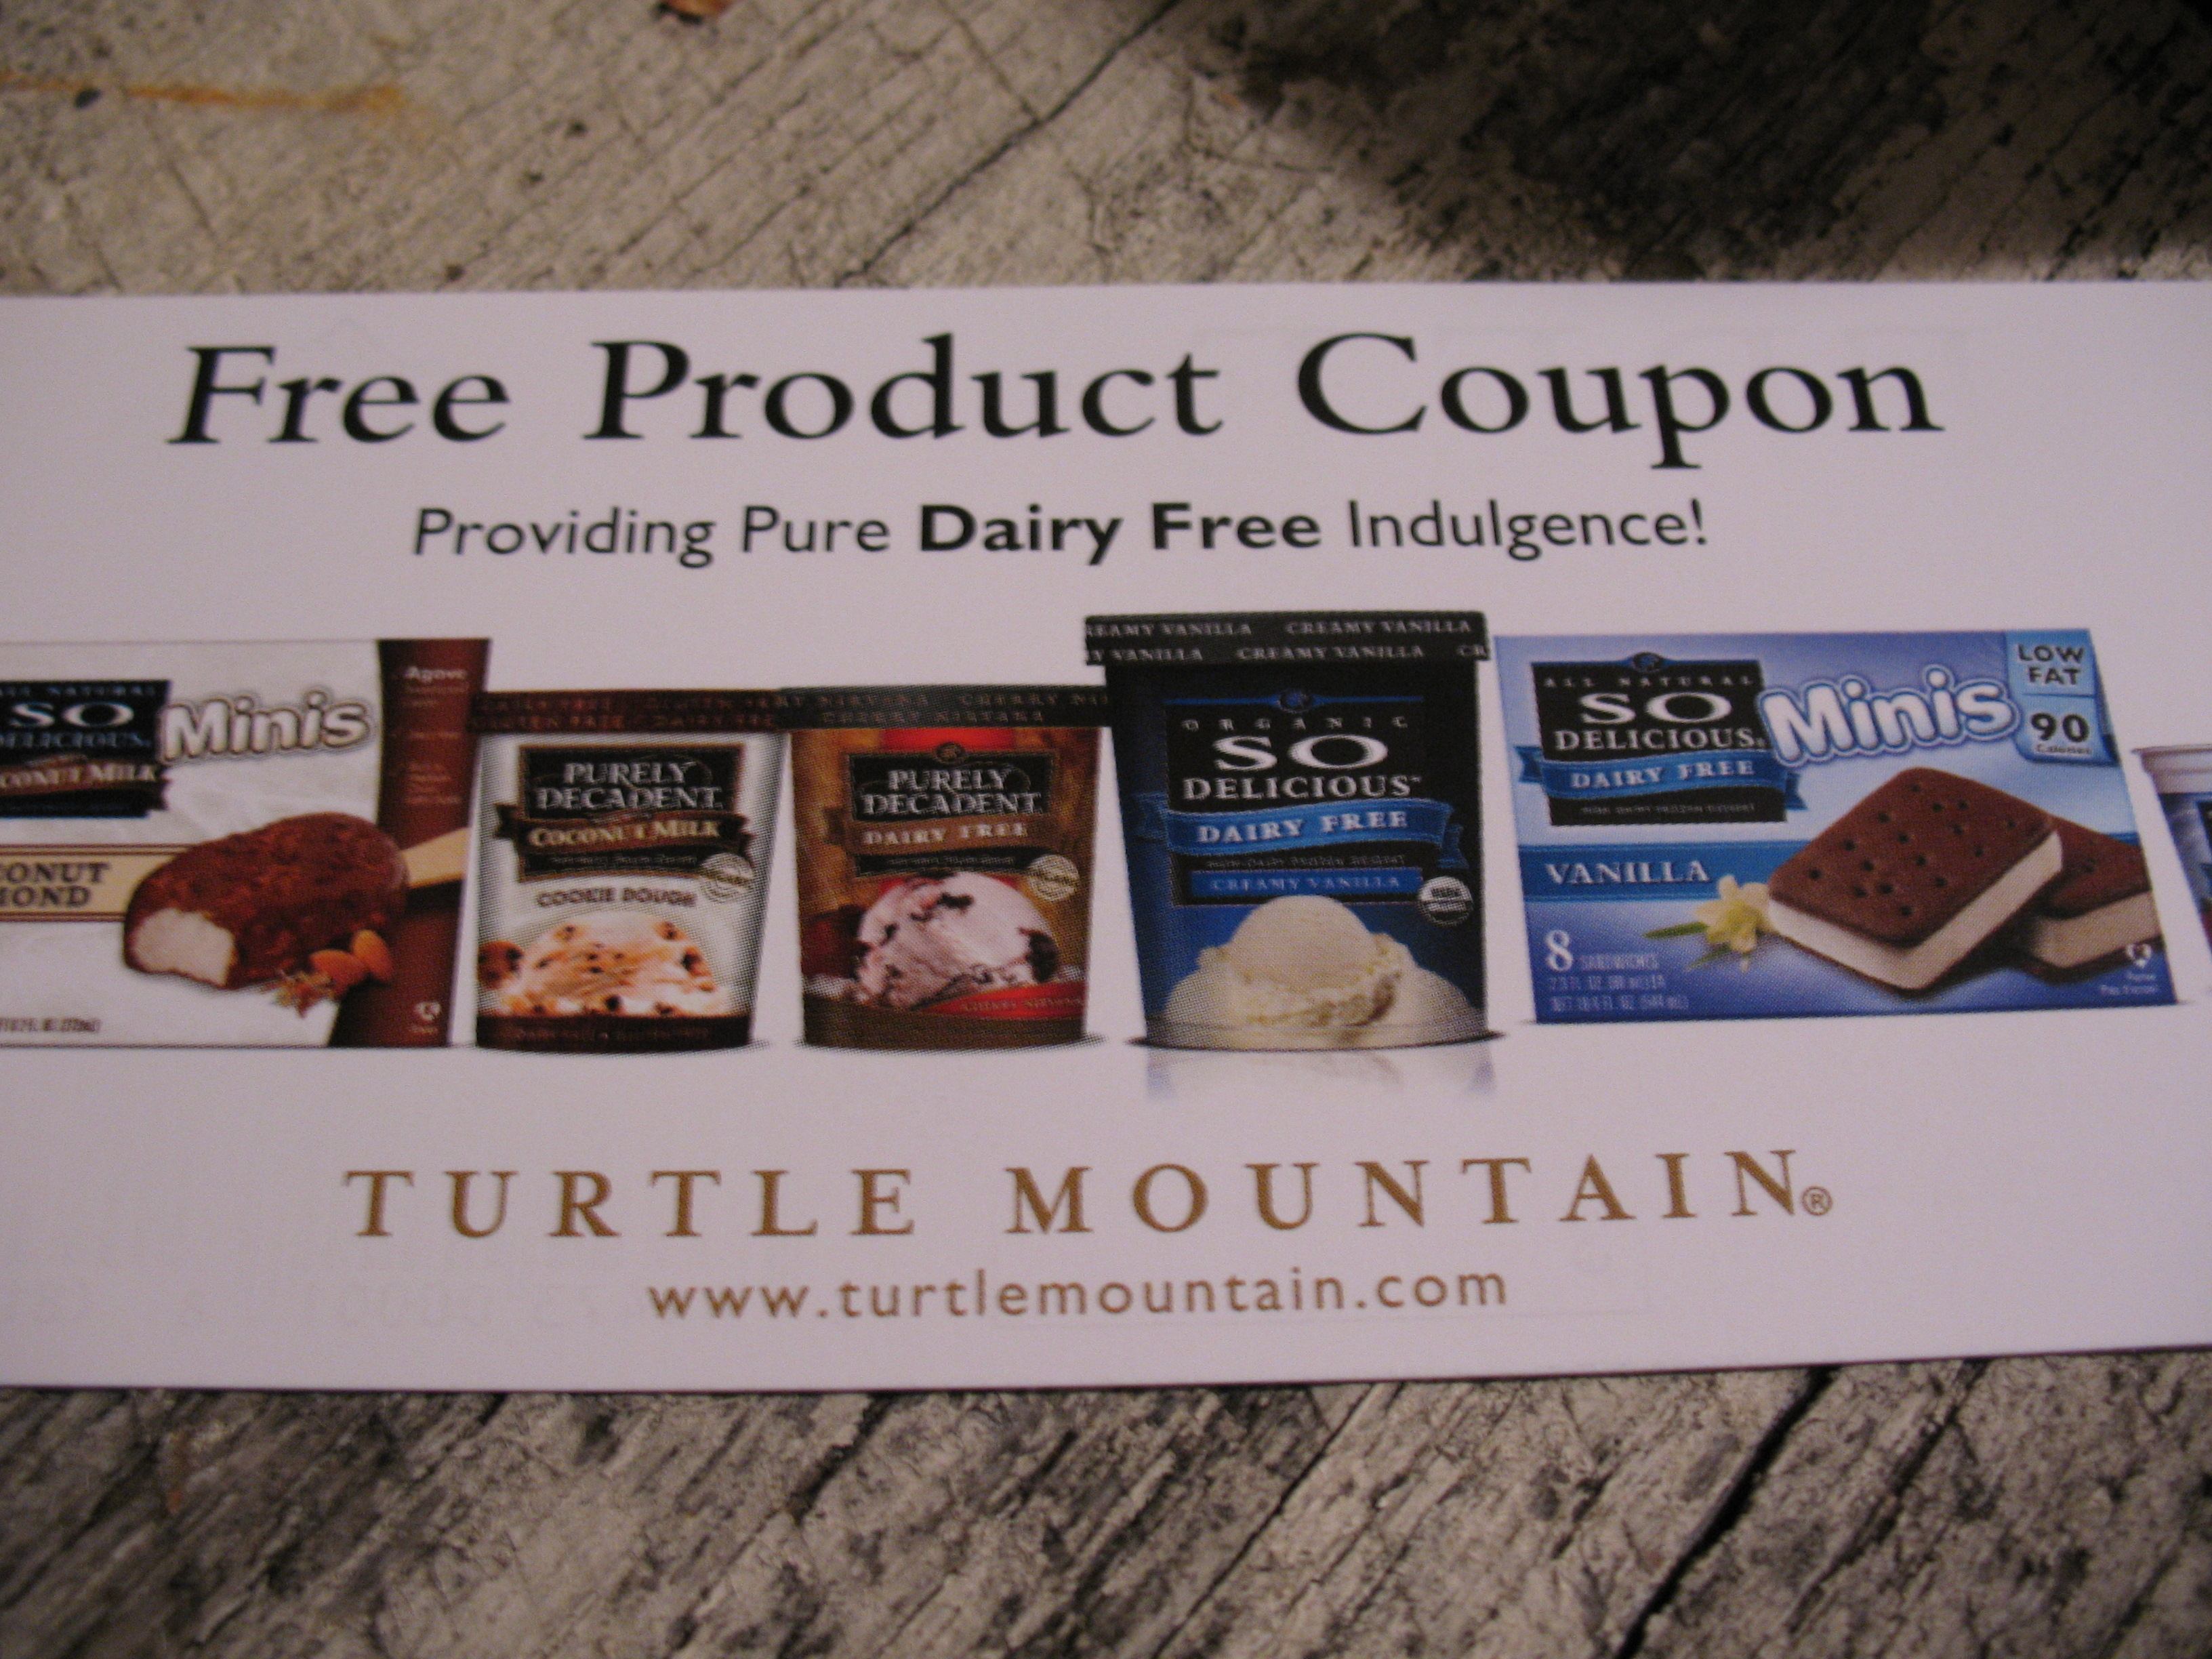 Free product coupons!